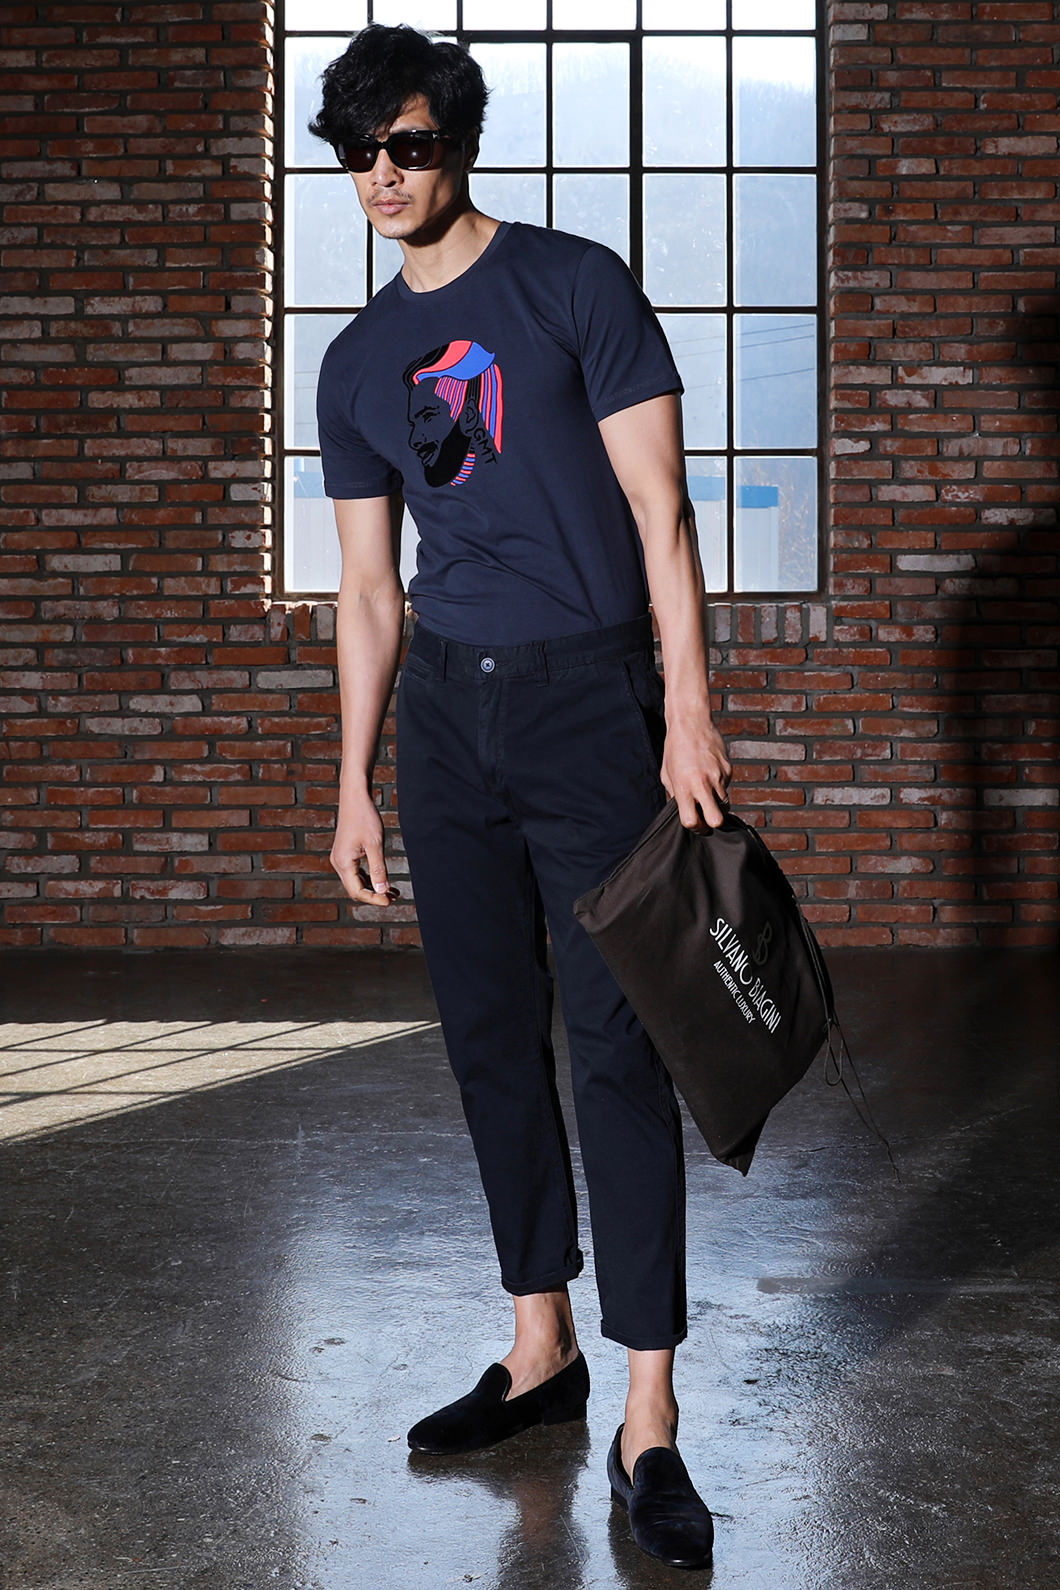 TOMMY ROUND T-SHIRT-3COLOR수입소량한정제품!